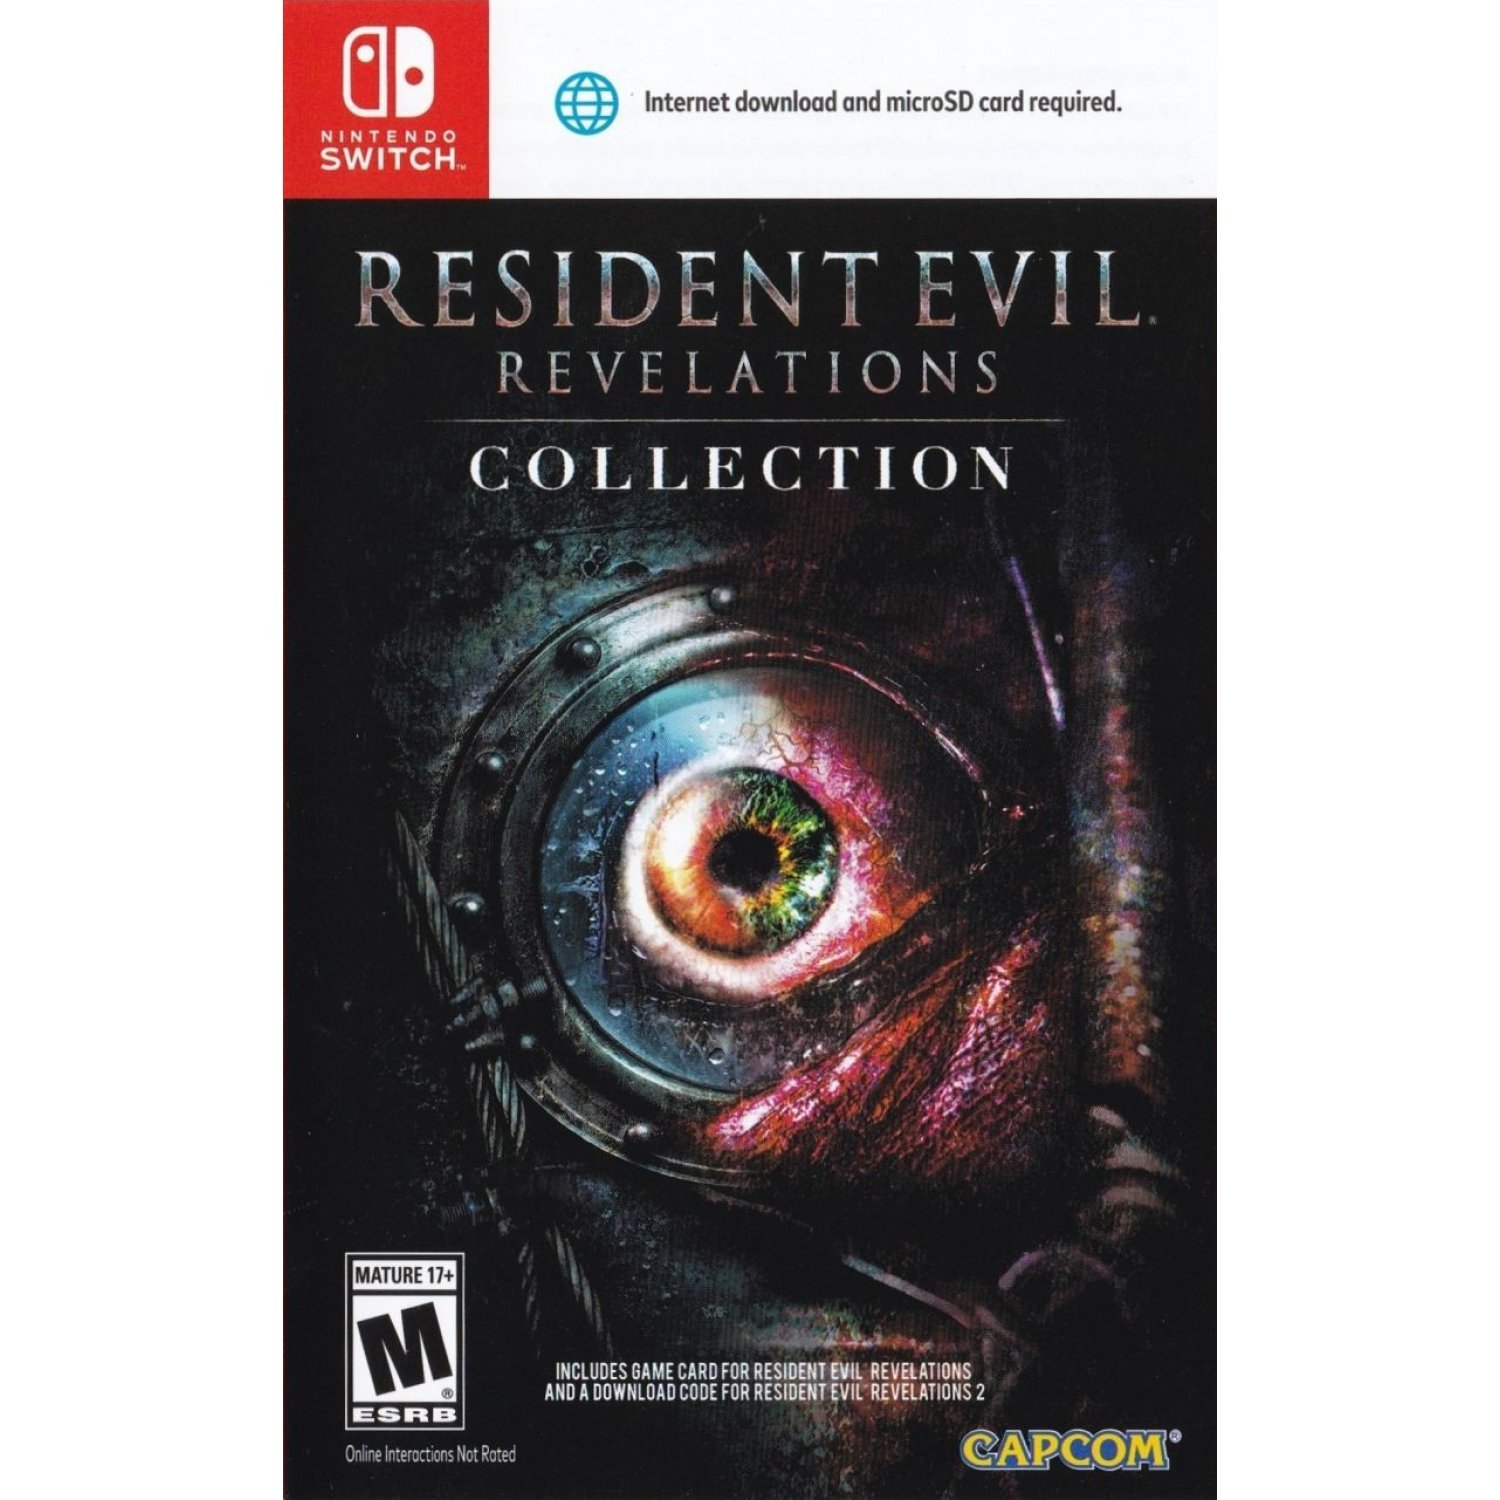 Resident evil revelations soundtrack download